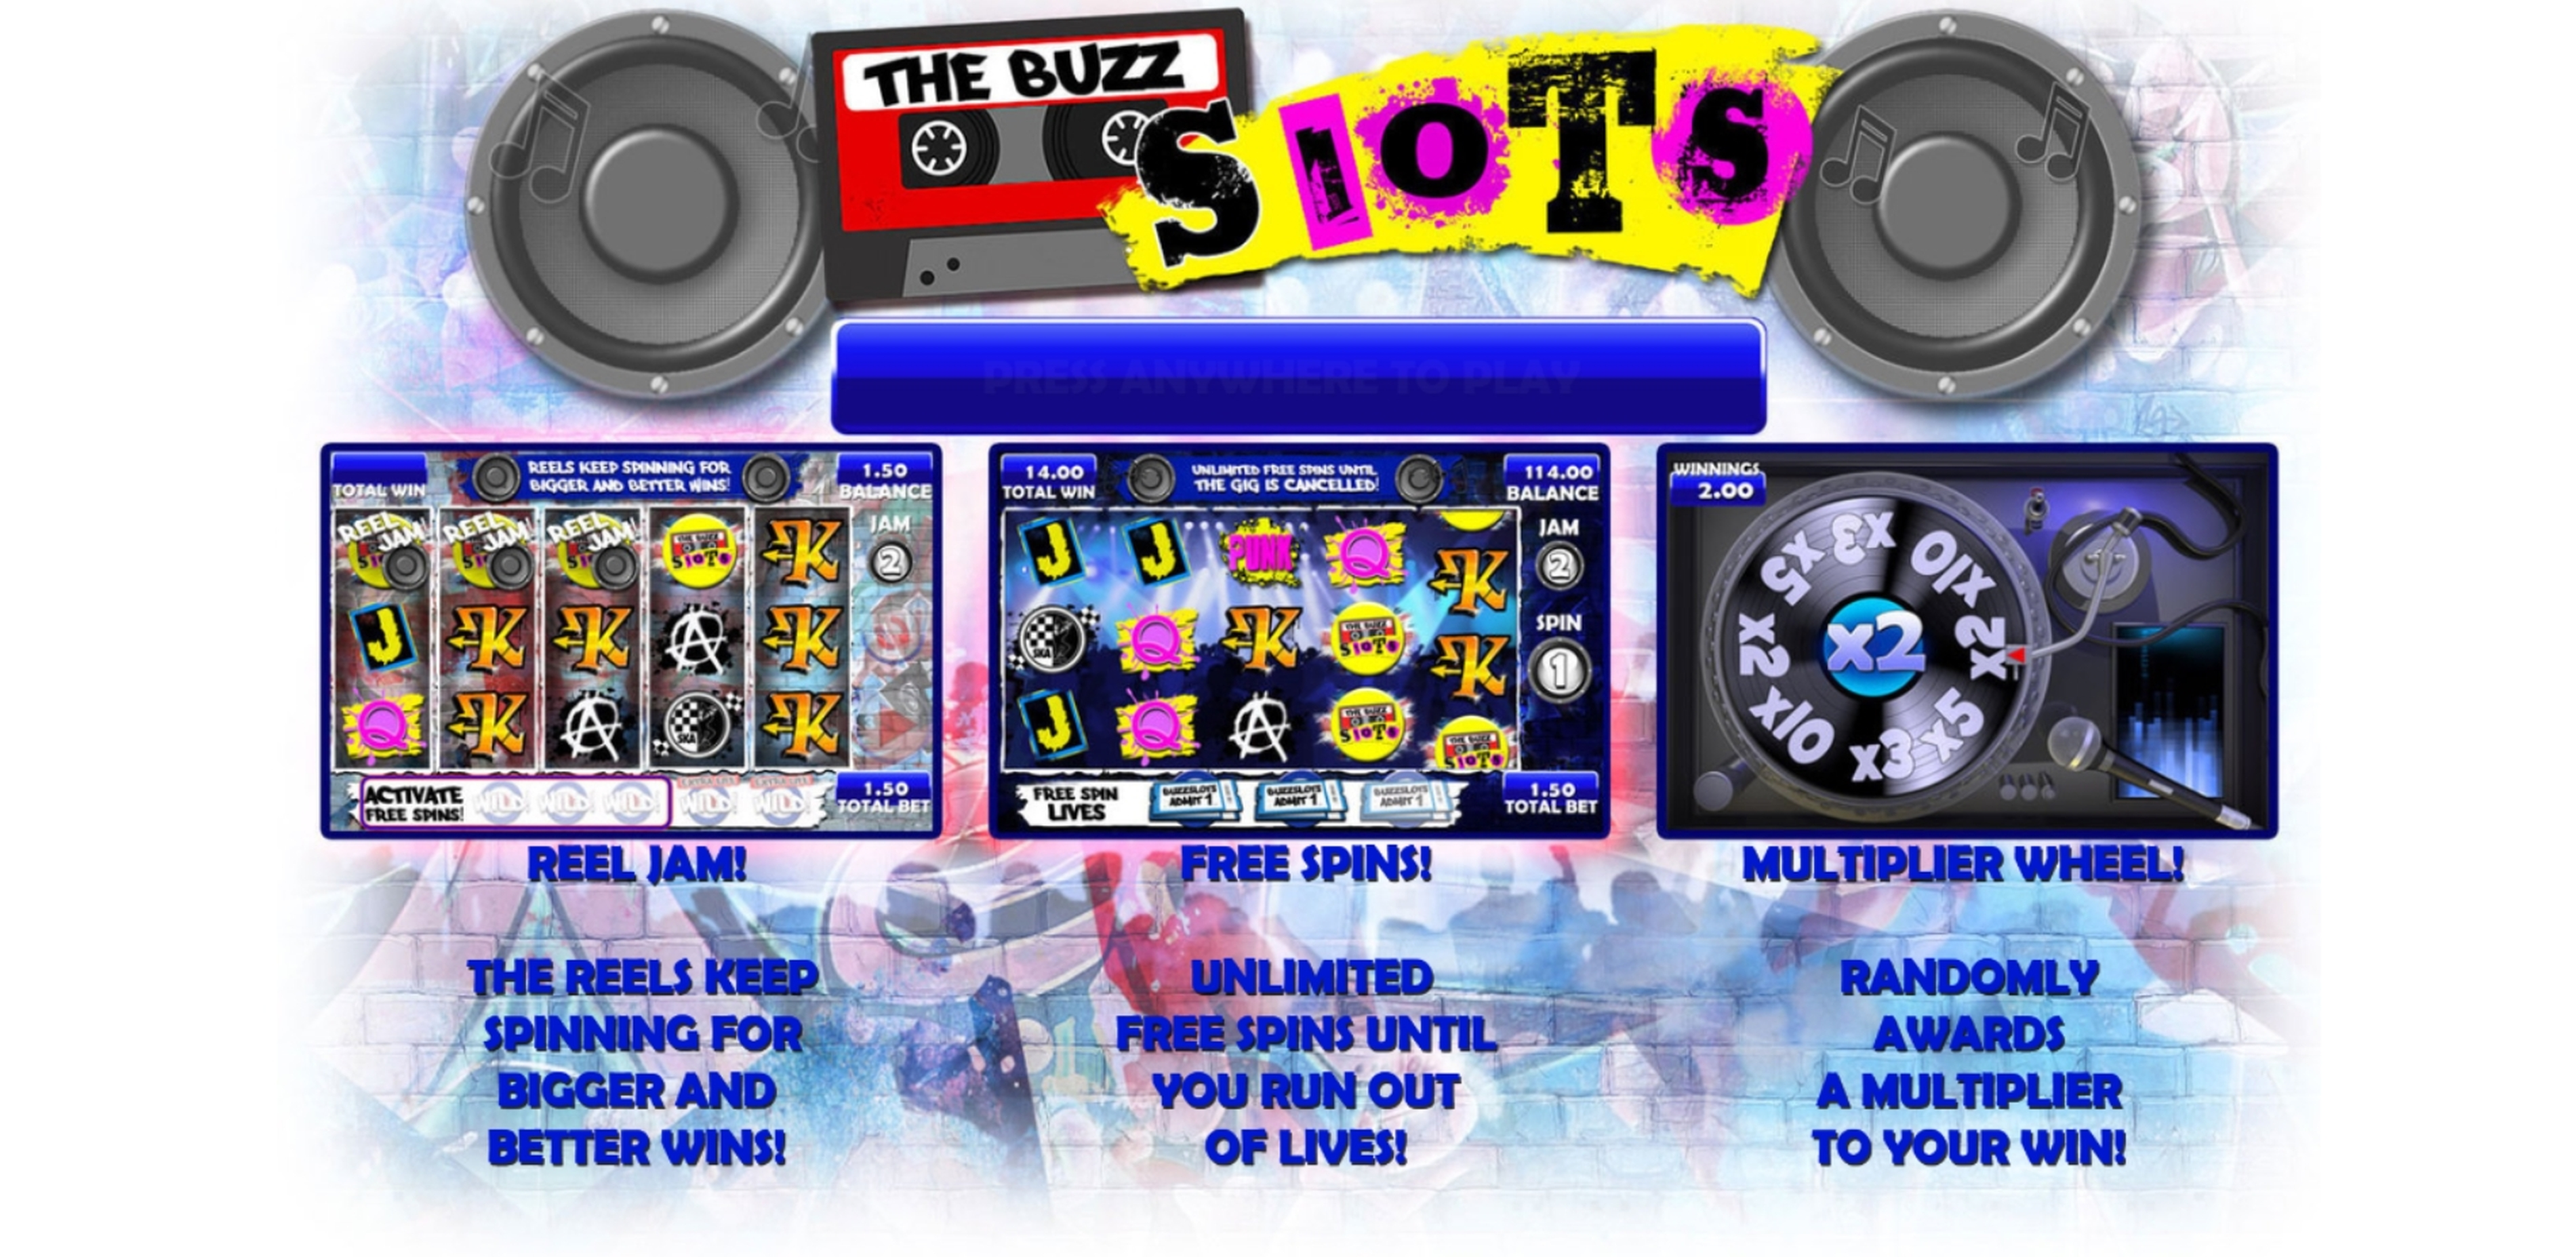 Play The Buzz Slots Free Casino Slot Game by Games Warehouse